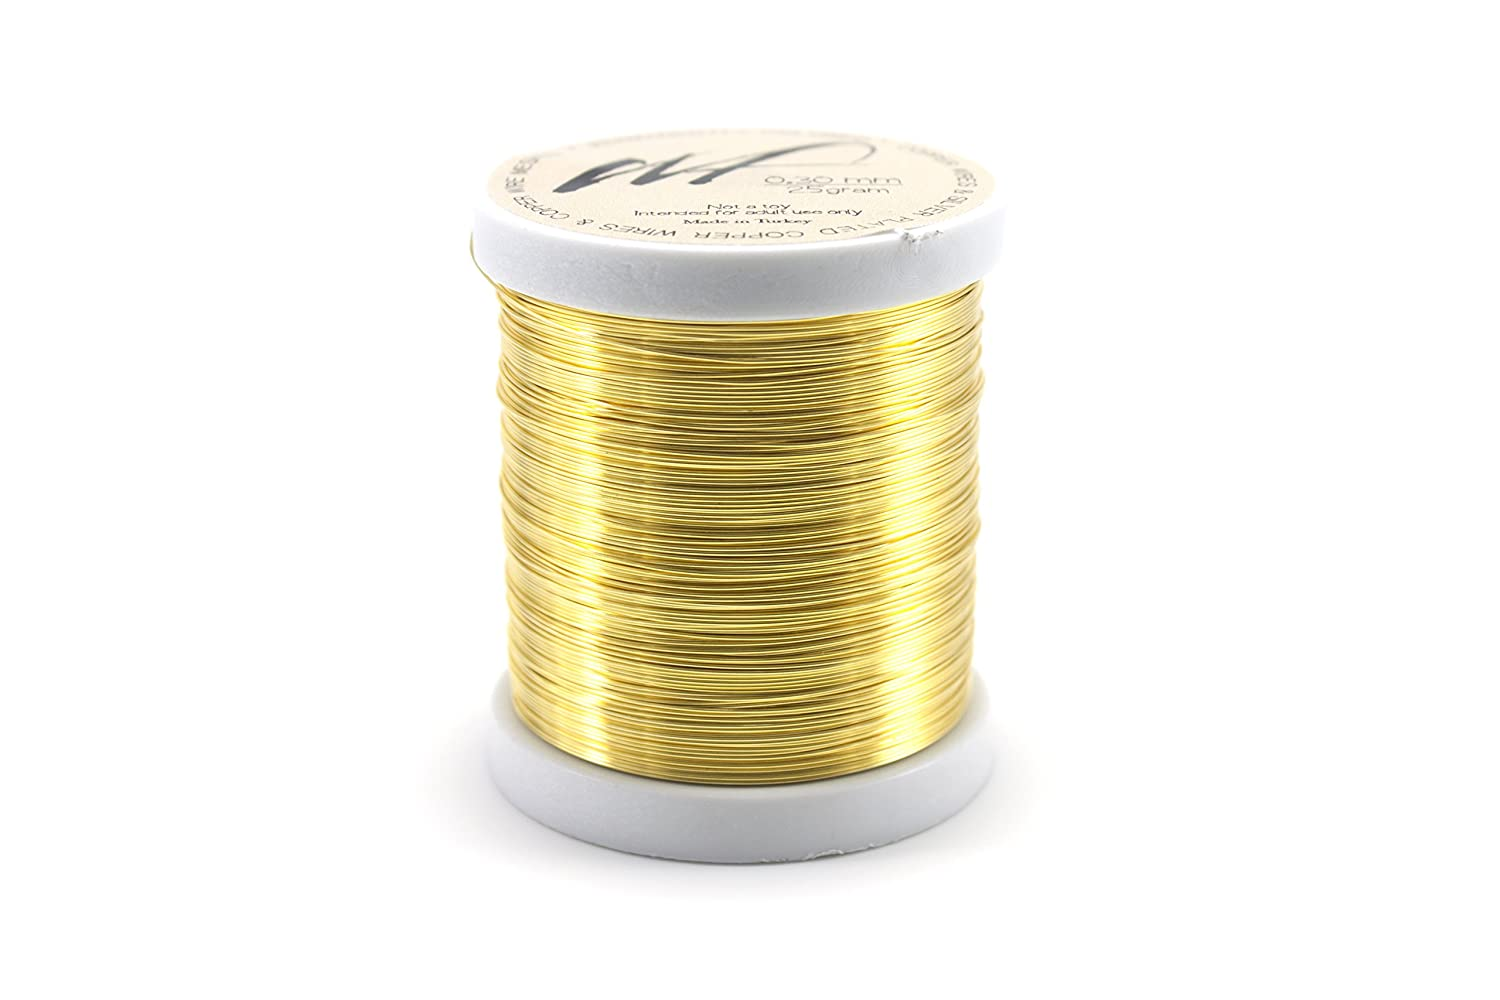 WF Color Set 1, 0.80 mm 20 Gauge Tarnish Resistant Silver-Plated Copper and Copper Wire Set of 4 spools for Wrapping Jewelry Making Beading Floral Colored DIY Artistic Craft Coil Wire kit